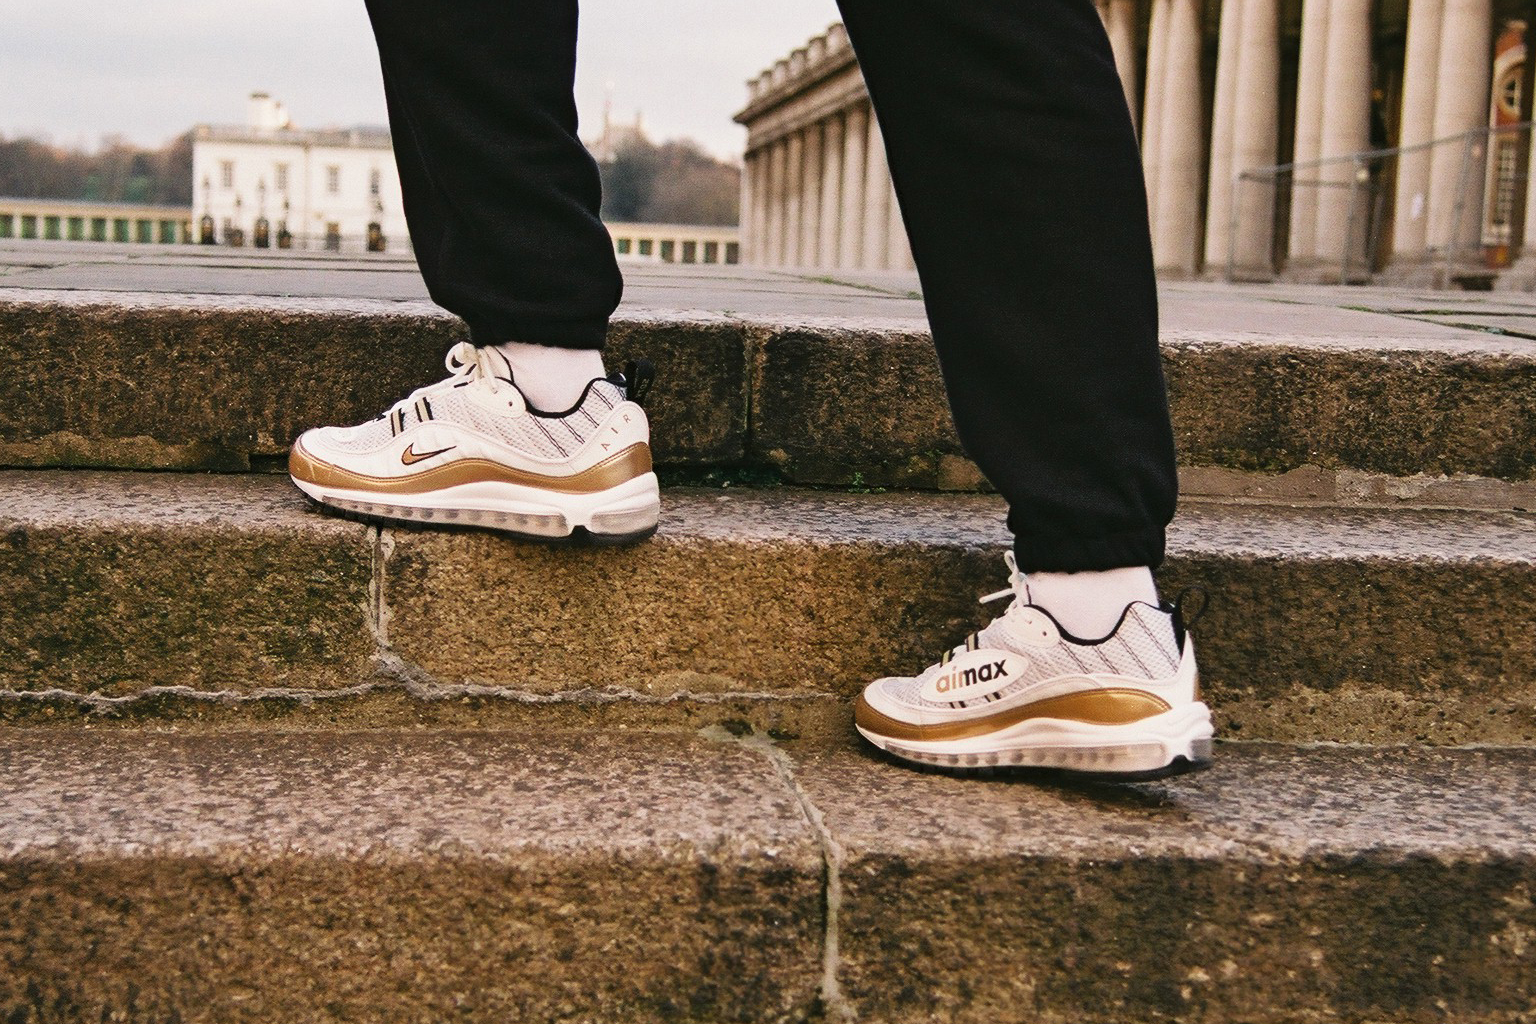 a428d3d44a0c5 Nike GMT Pack UK Exclusive Air Max 98 Air Zoom Spiridon White Gold Colorway  White